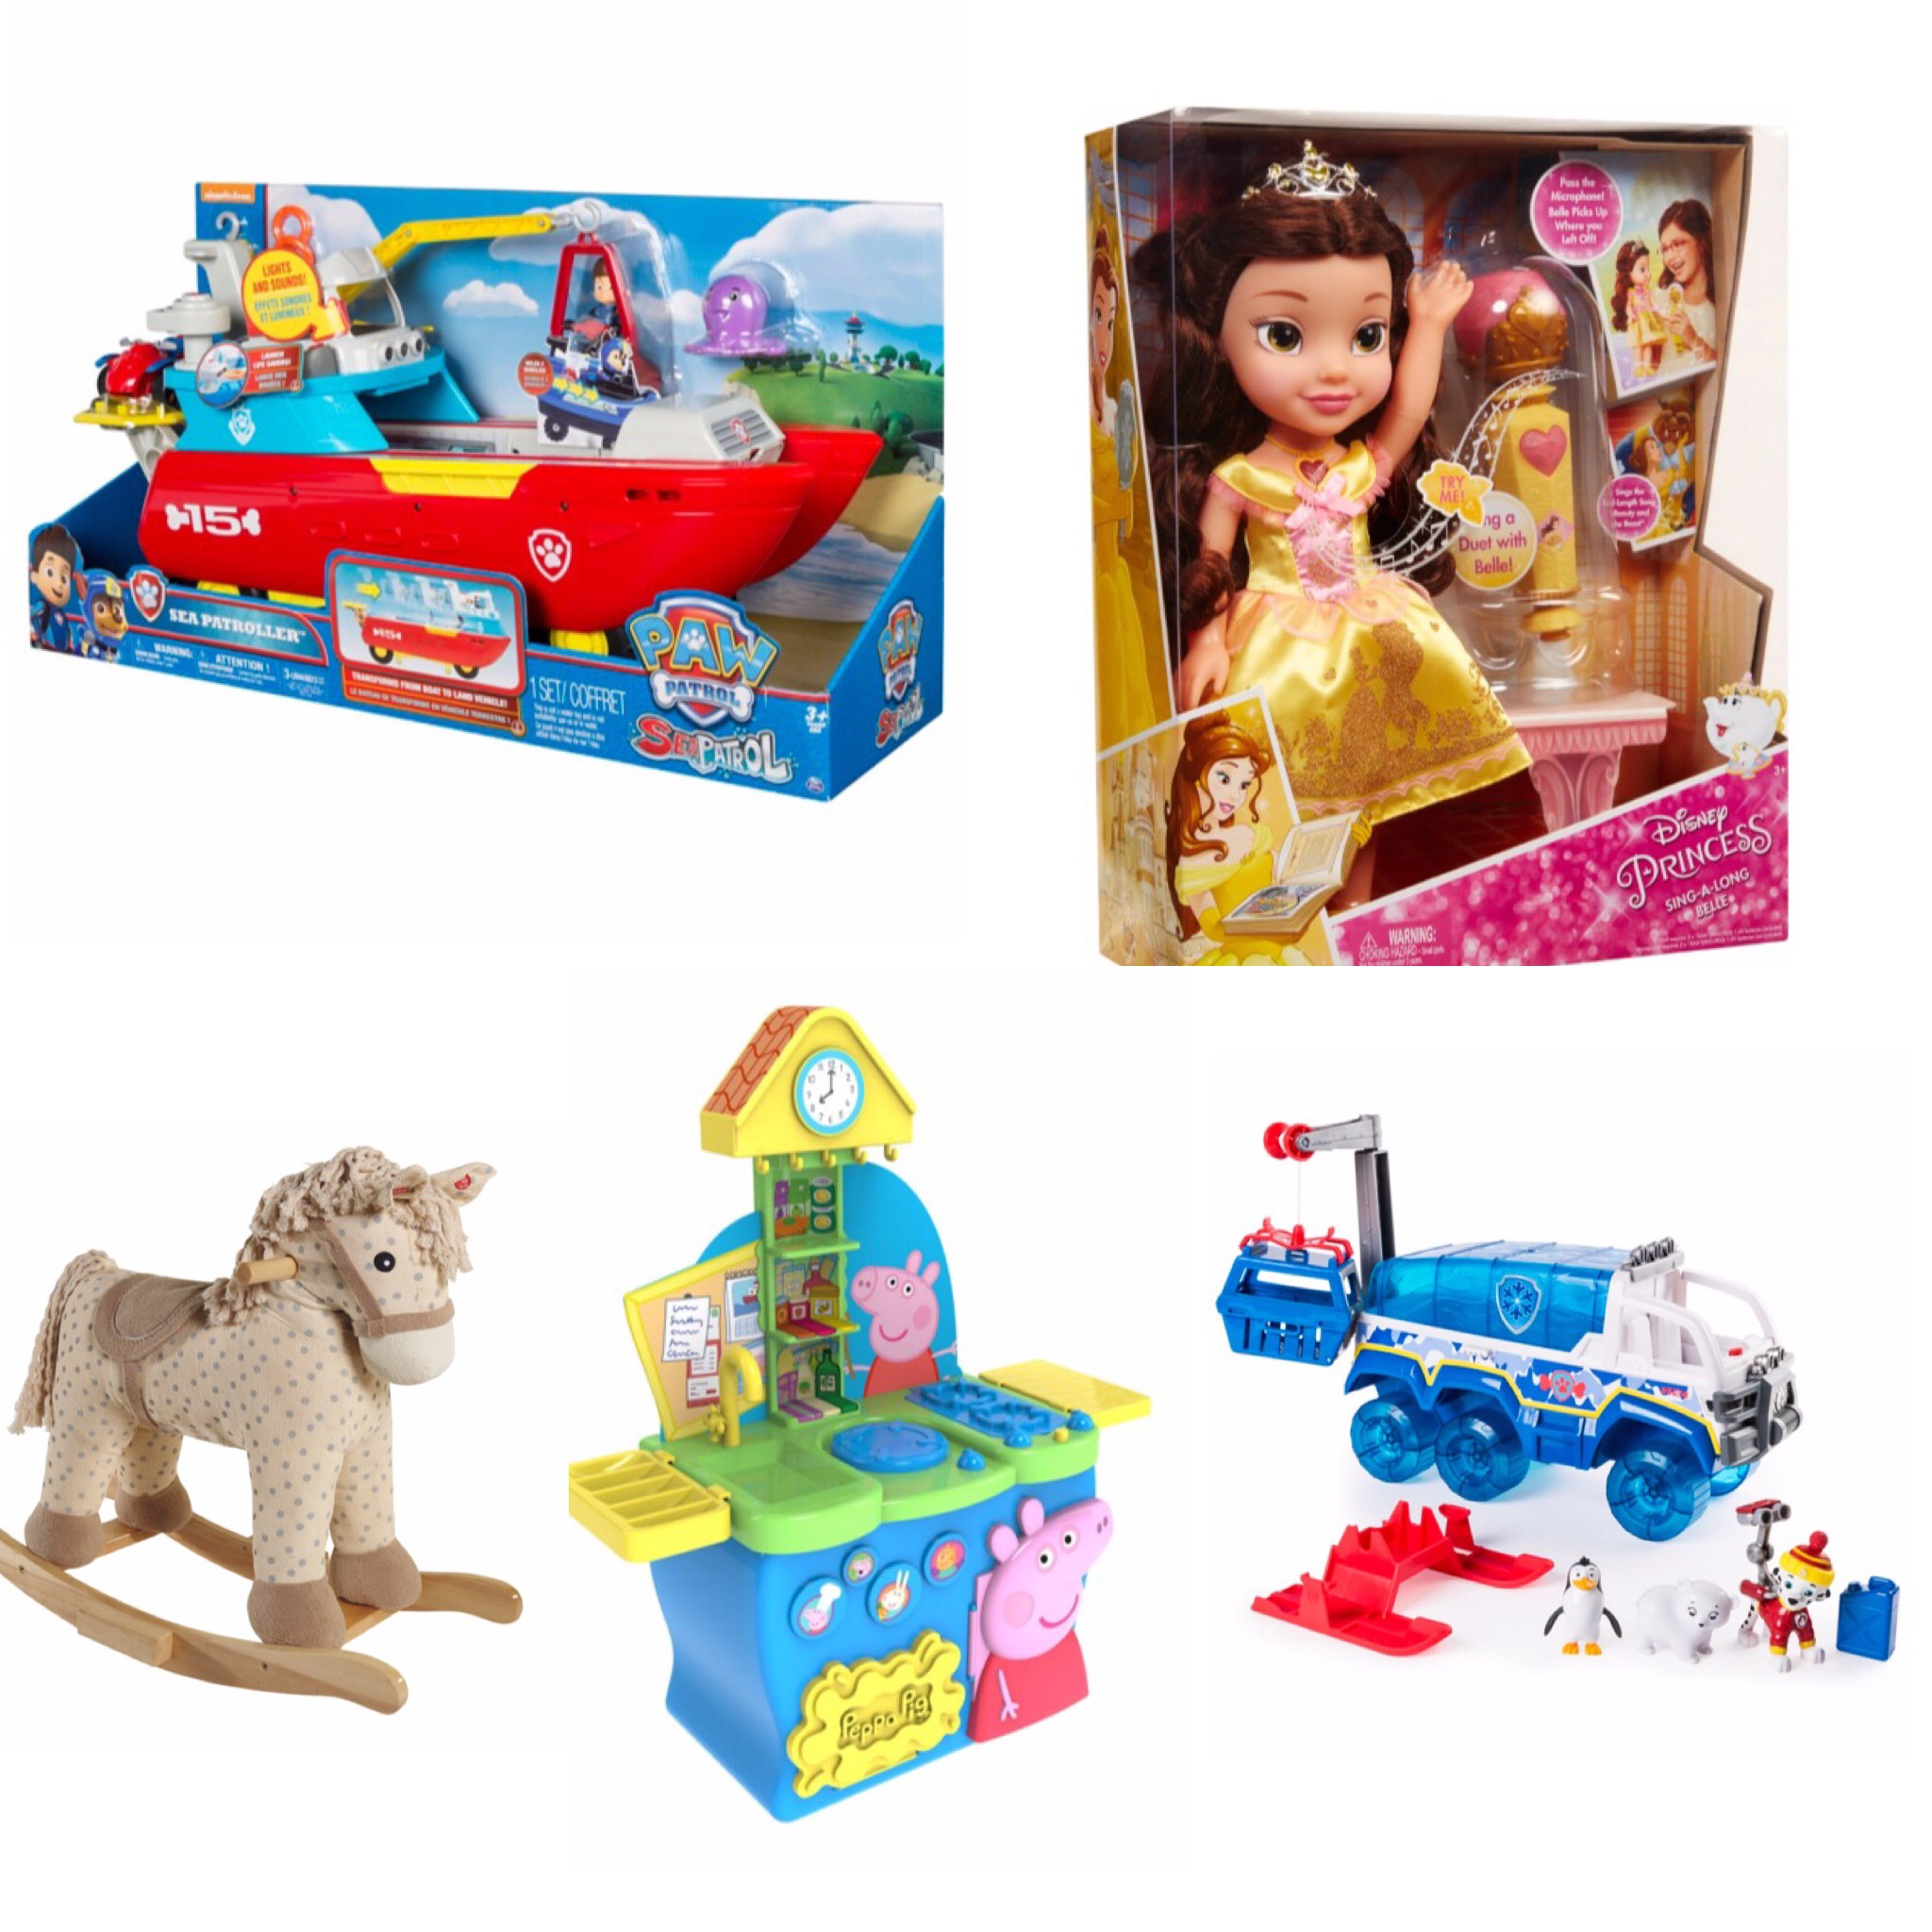 Asda is always having a good sale throughout the year, but one of its most popular is the up to half price toy sale. Shopping is basically an event now because it has become huge with shoppers – So when is the next Asda toy sale event?